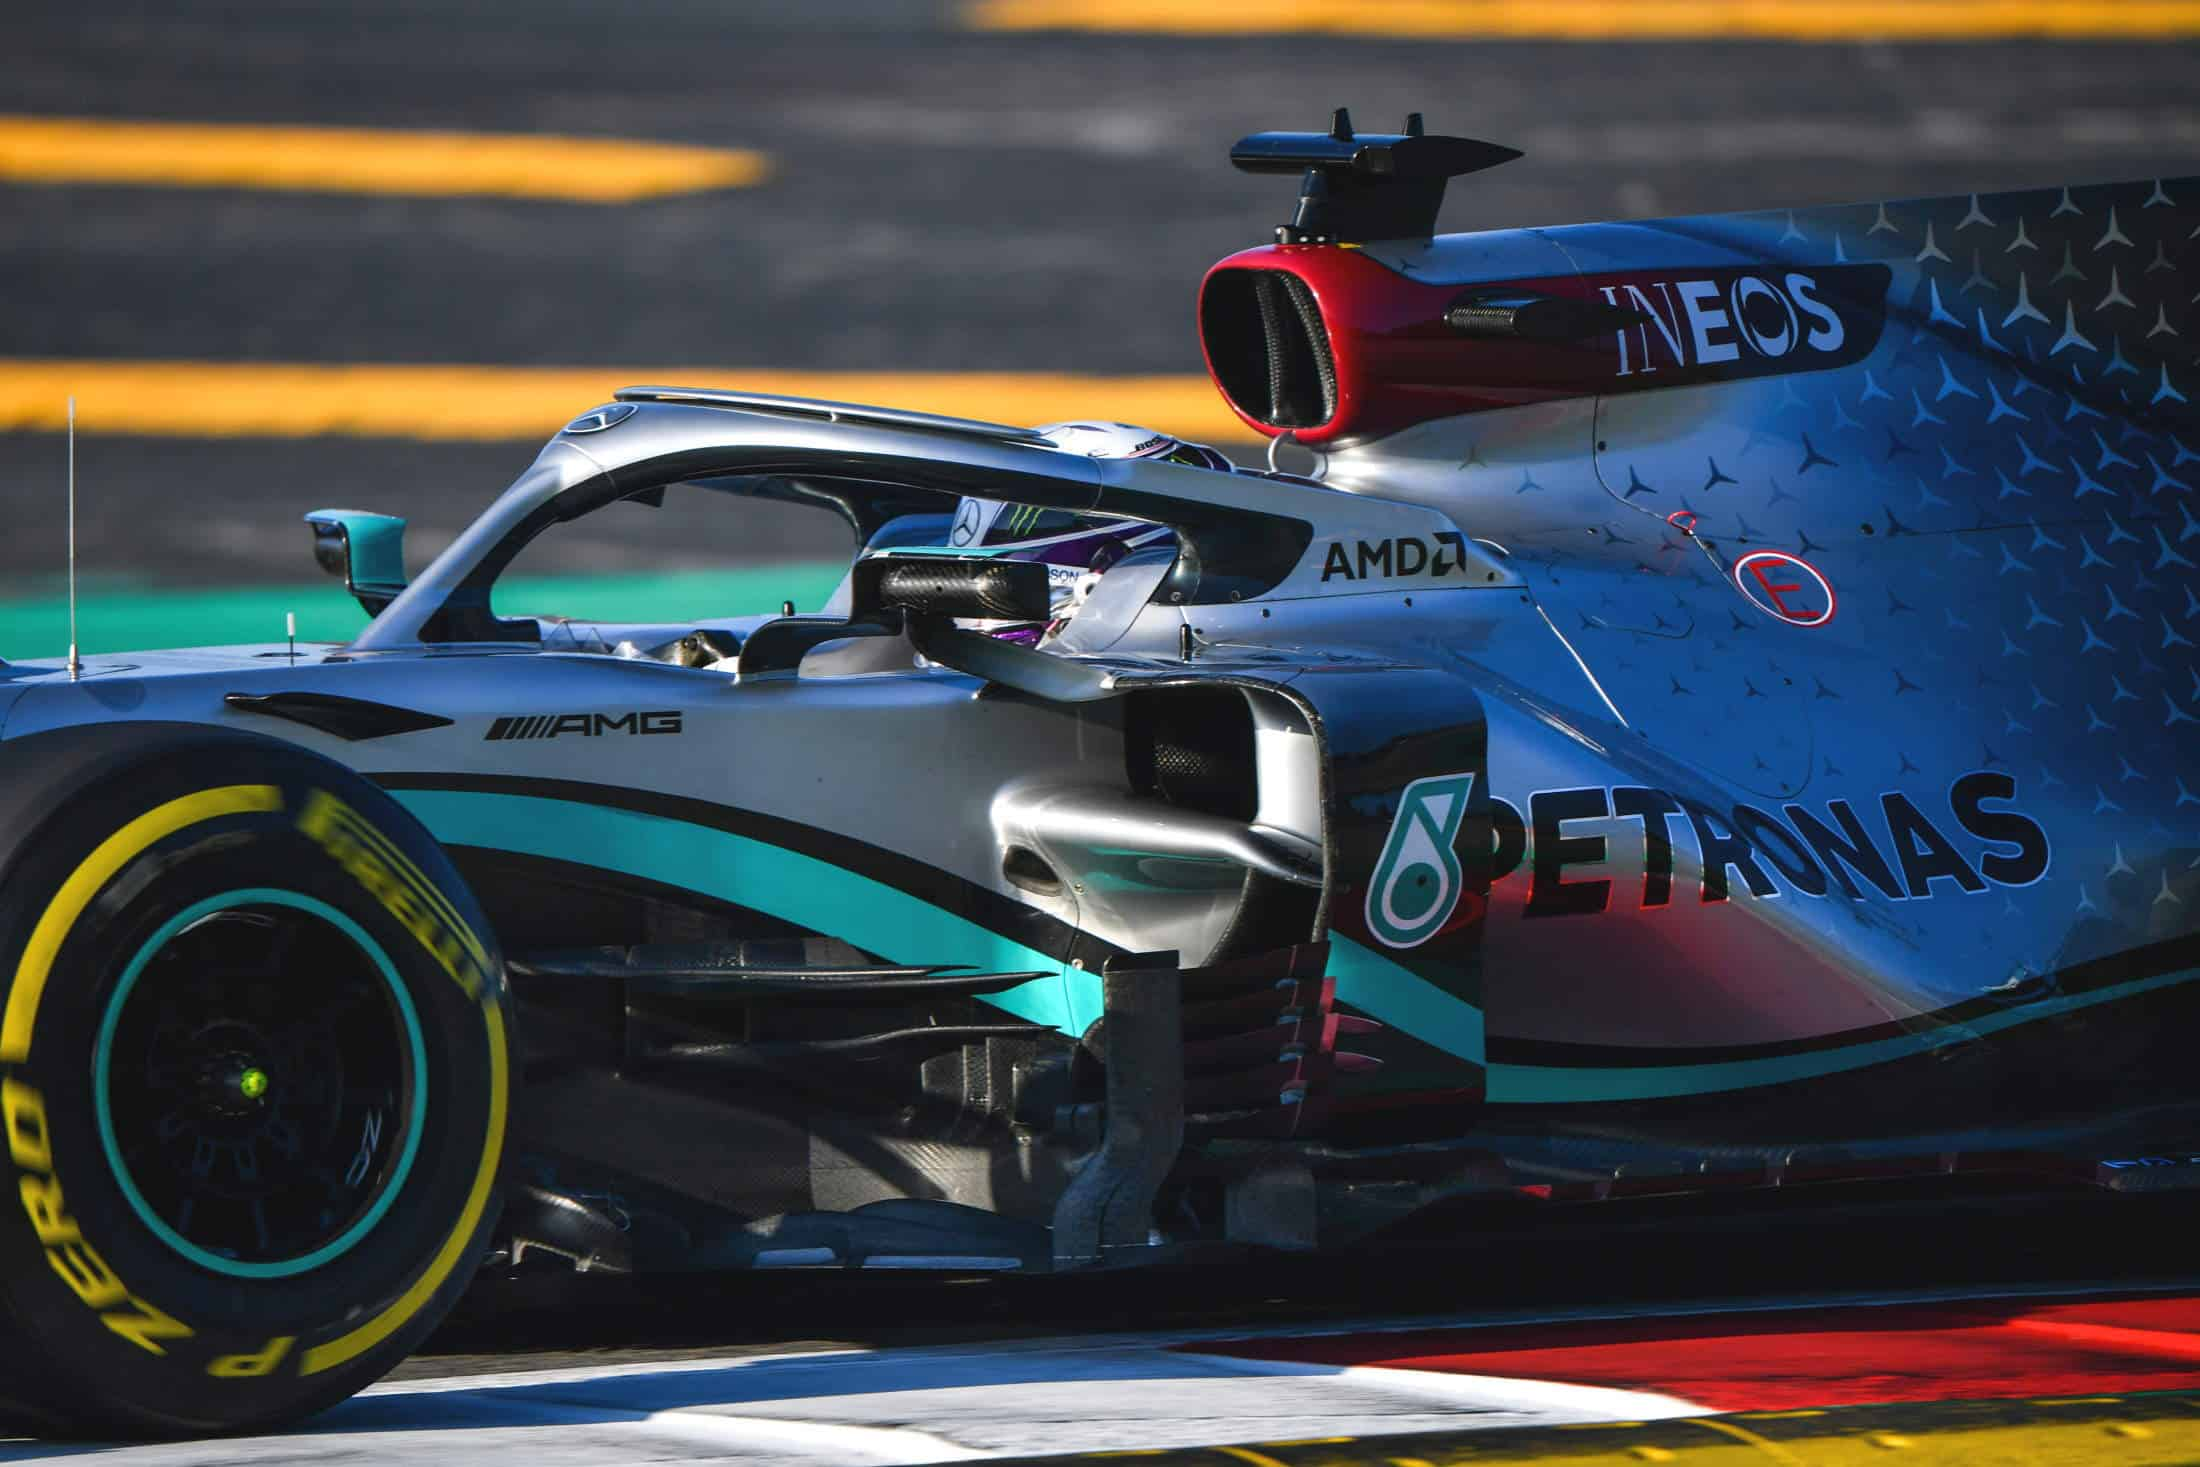 Hamilton Mercedes F1 W11 Barcelona Test 1 Day 2 Photo Daimler